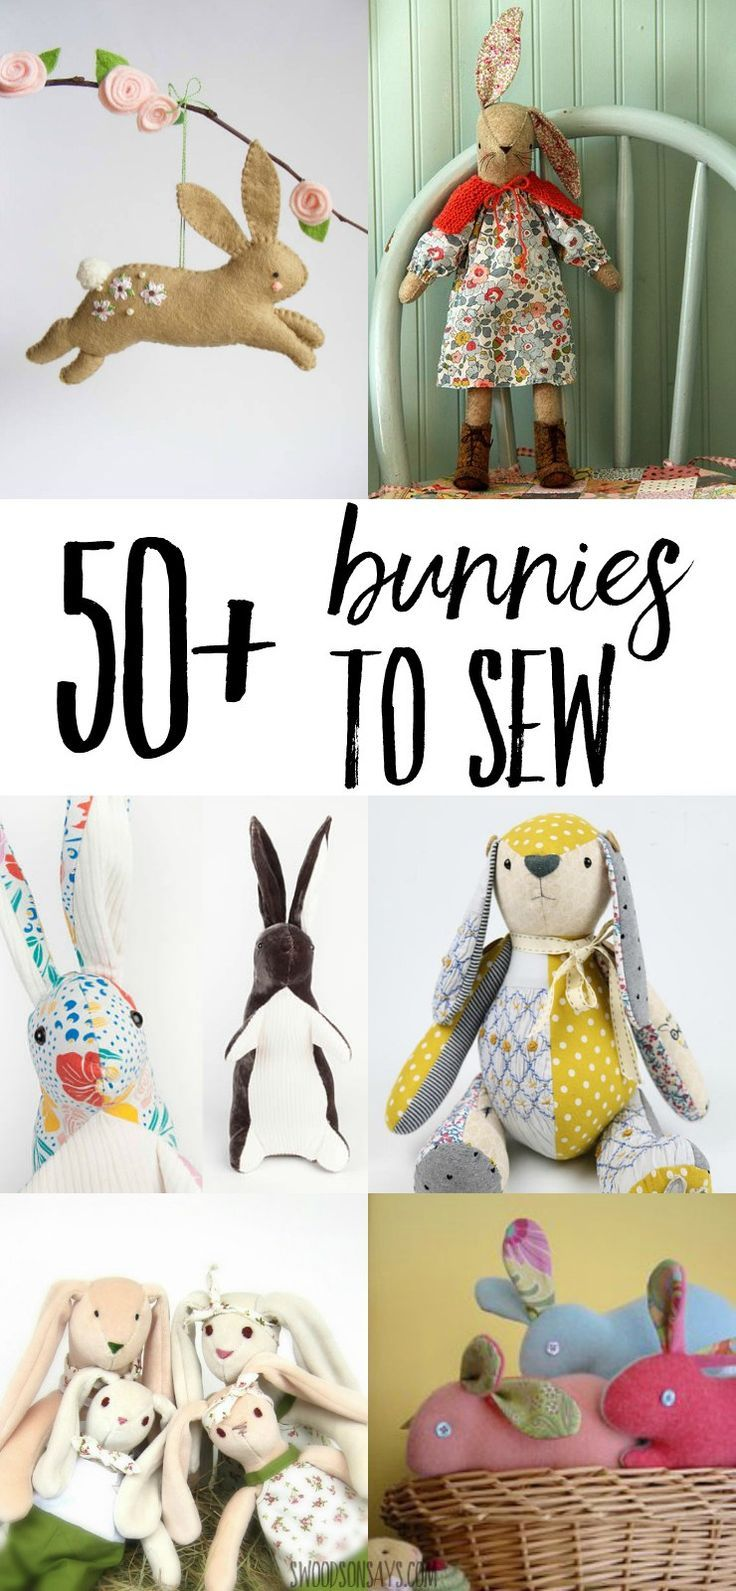 1139 best diy homemade easter crafts and treats images on pinterest 50 stuffed bunny sewing patterns negle Image collections